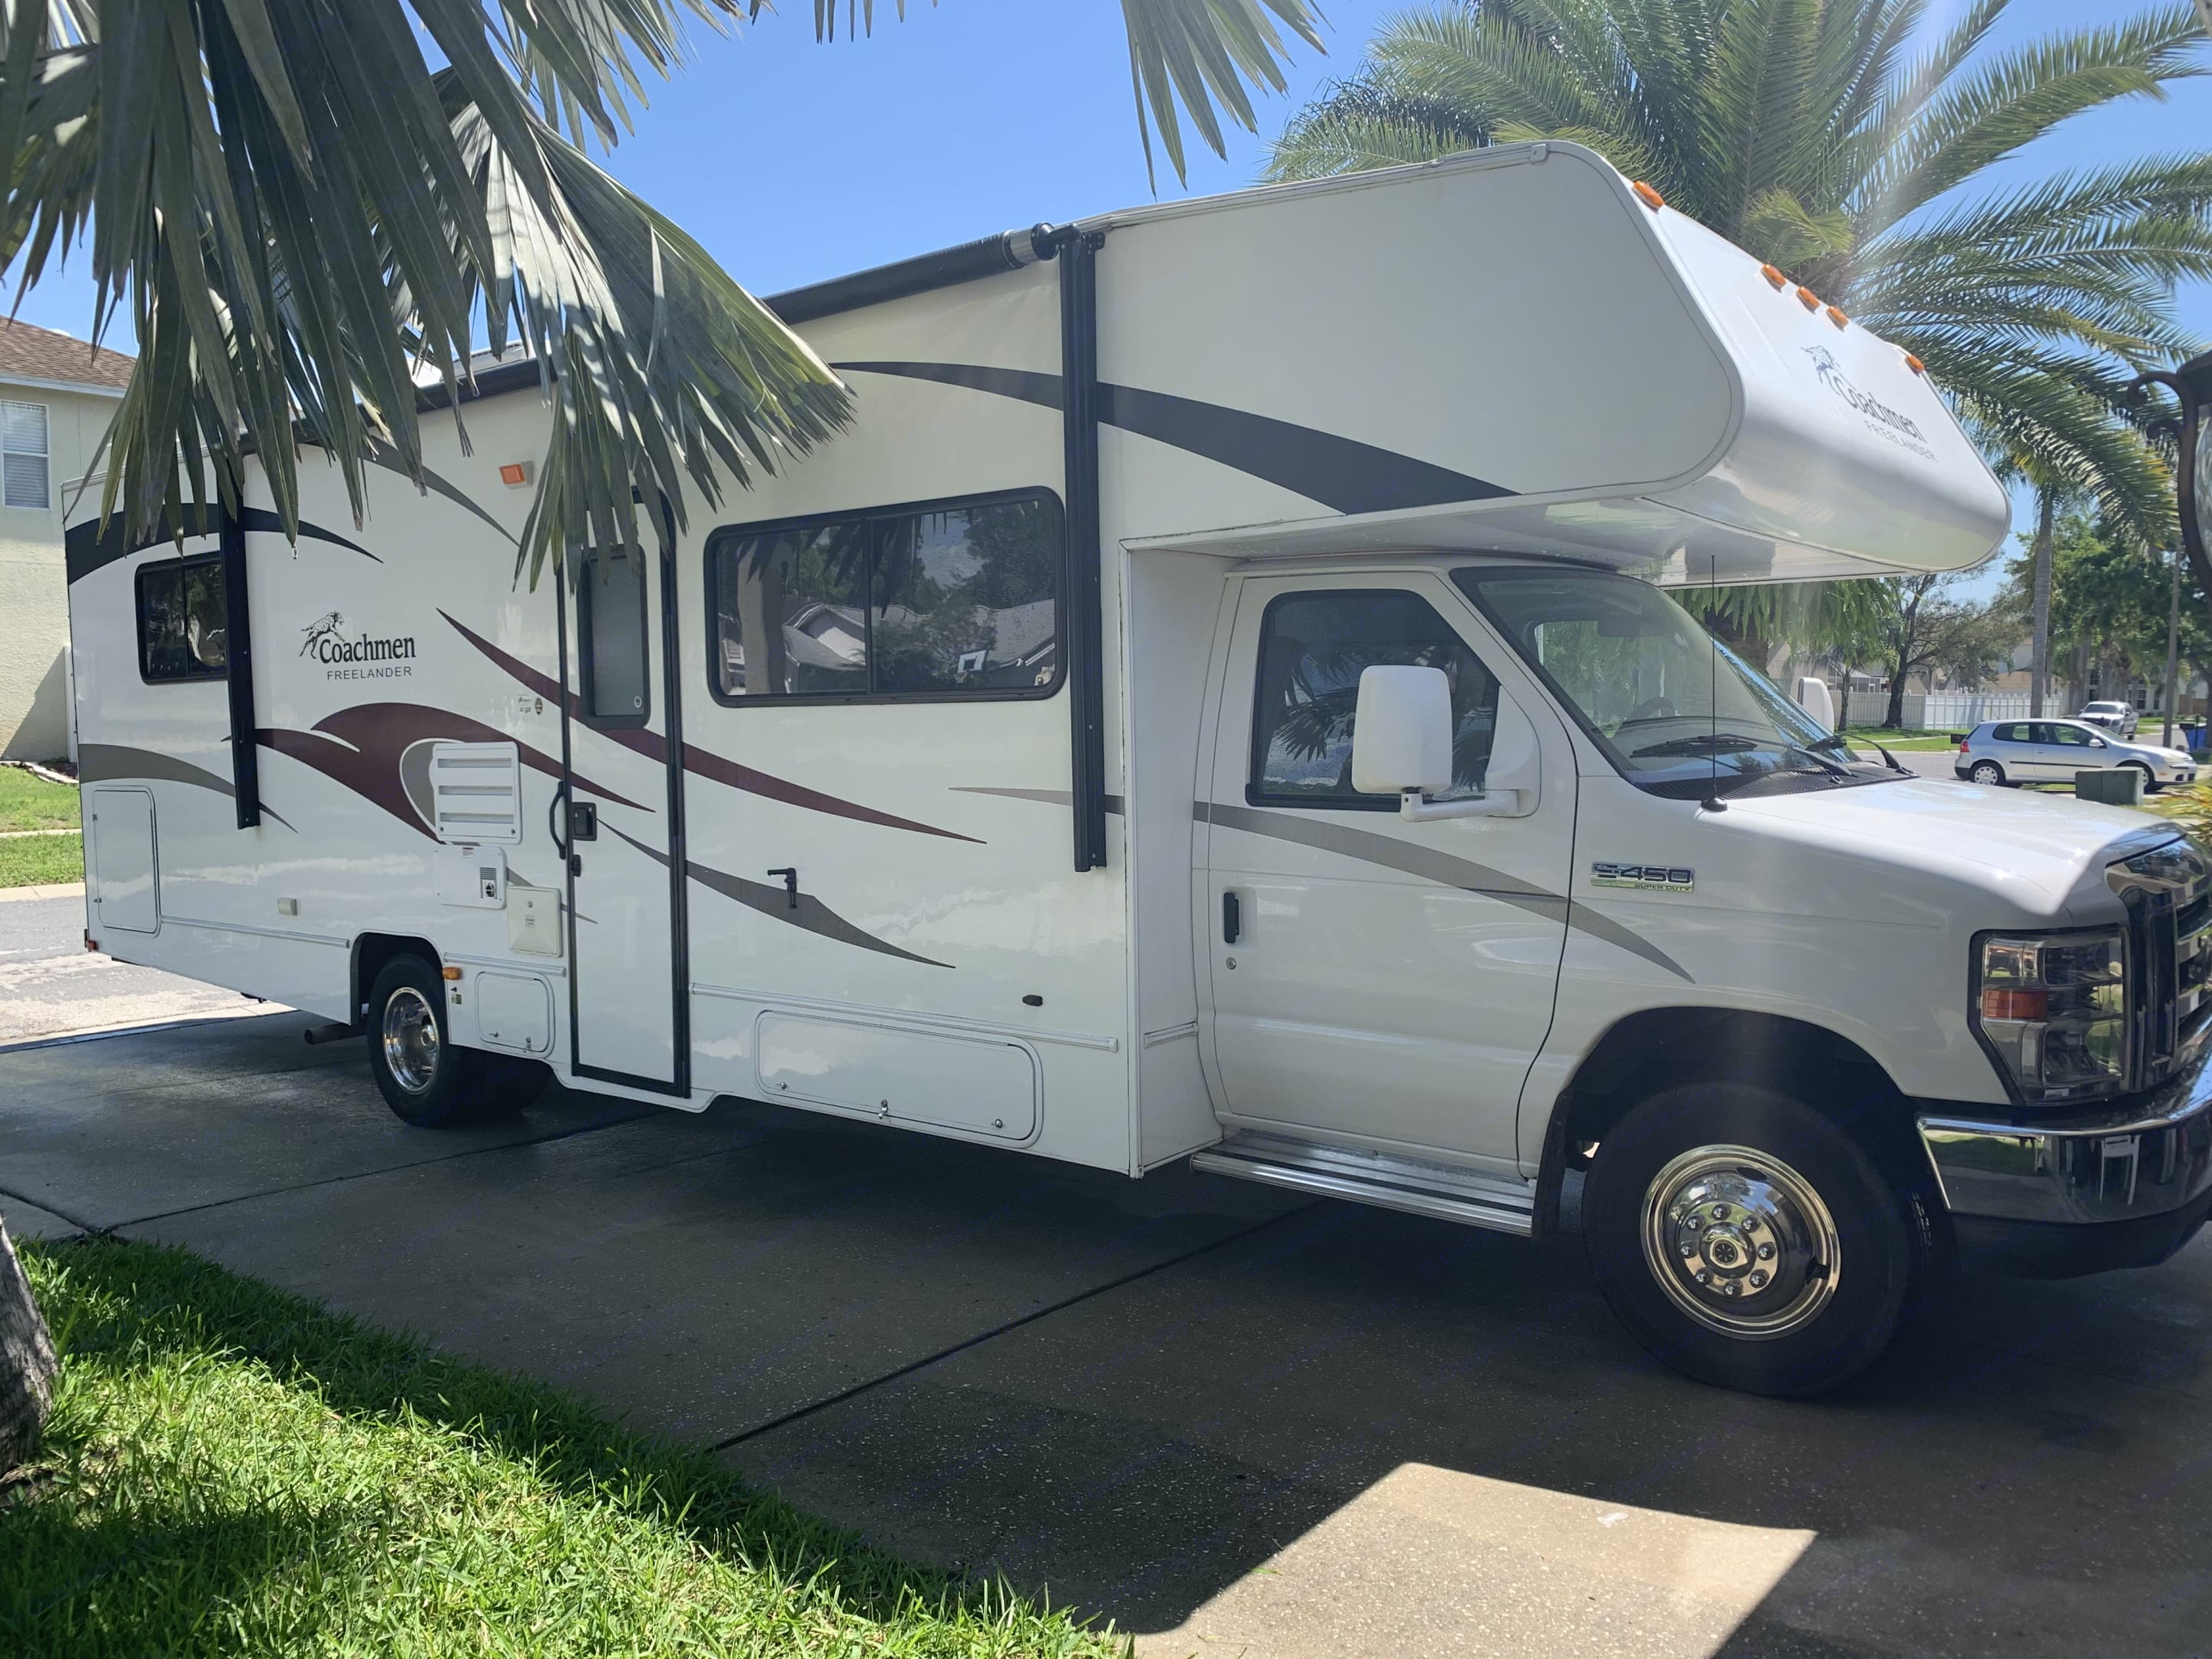 RV all clean and ready to check out!. Coachmen Freelander 2011